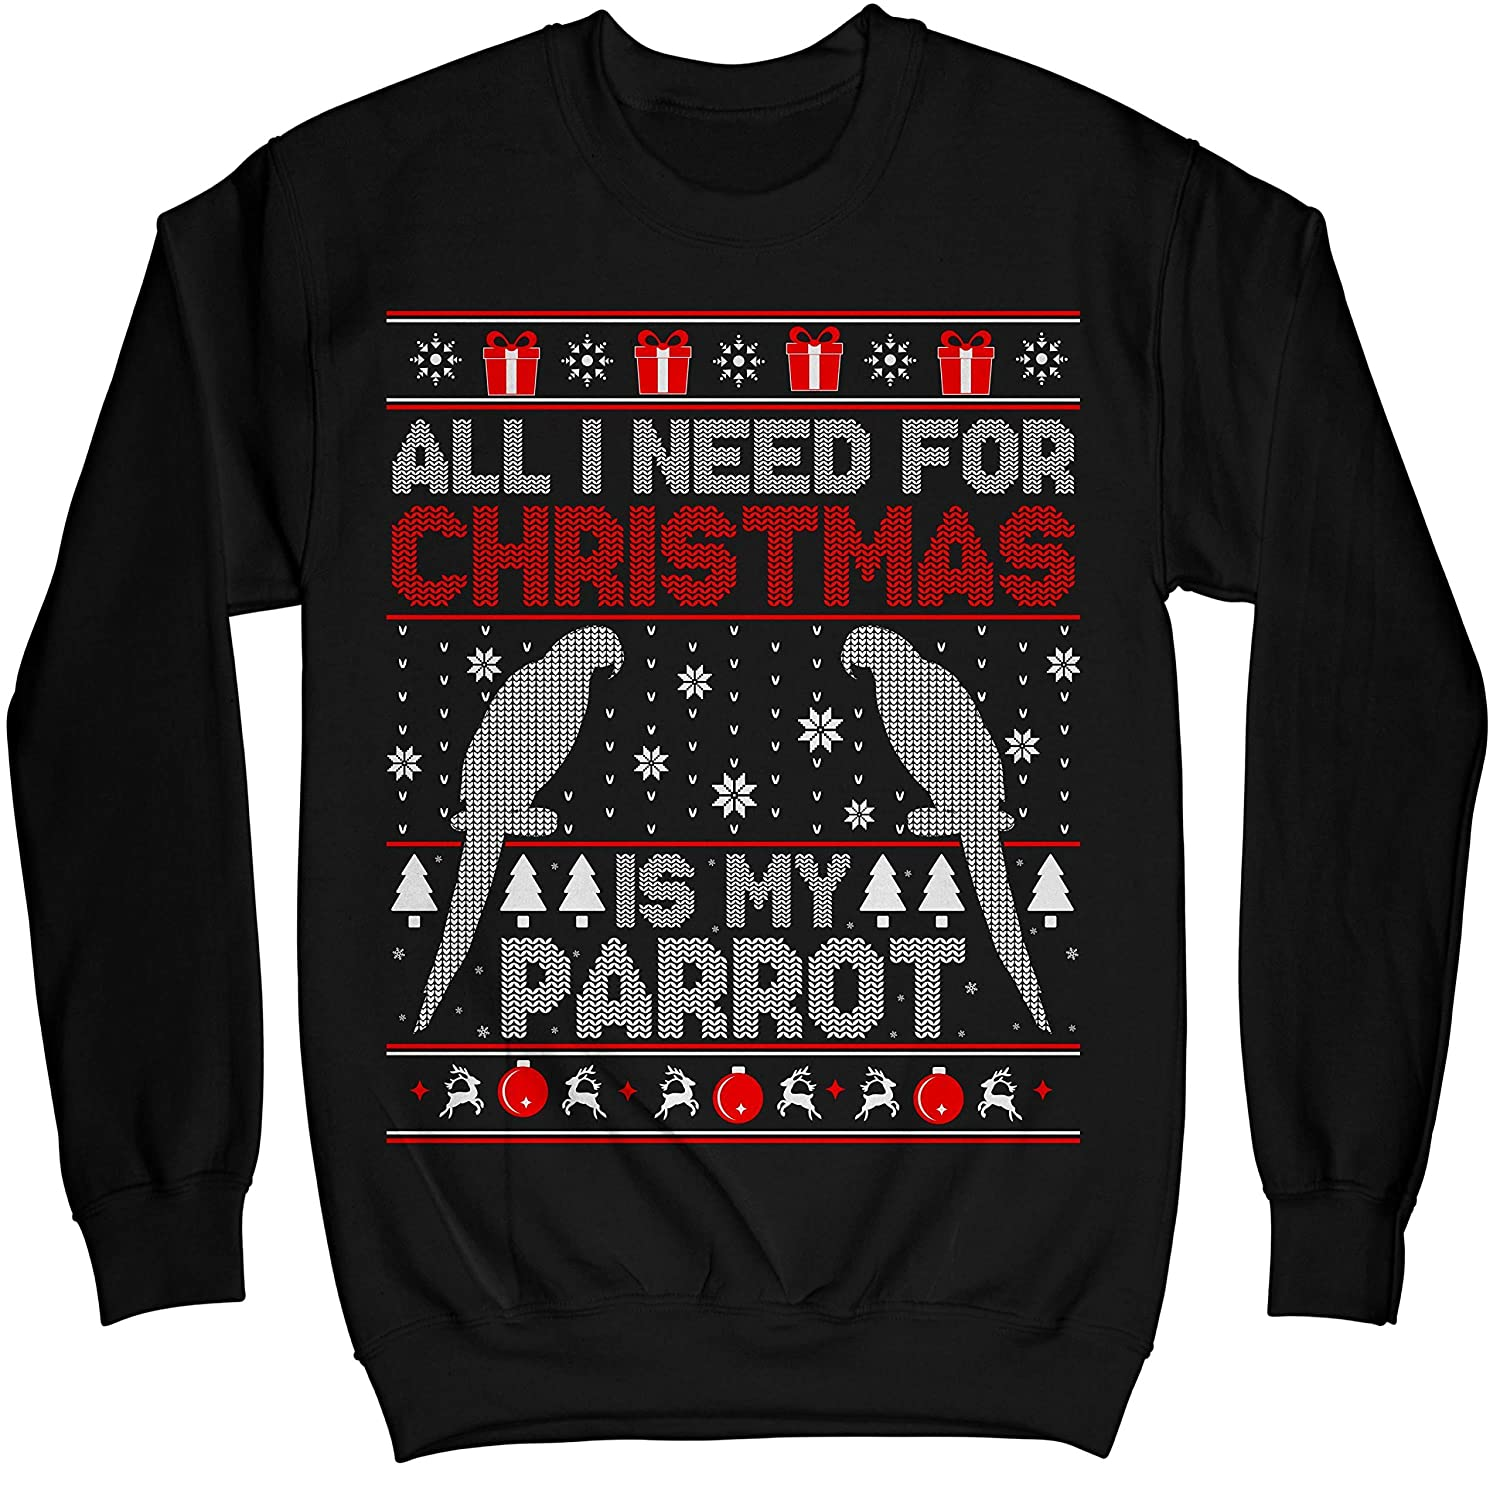 Multi-Style Apparel All I Need for Christmas is My Parrot Ugly Sweater Shirt - Noel Merry Xmas Sweatshirt